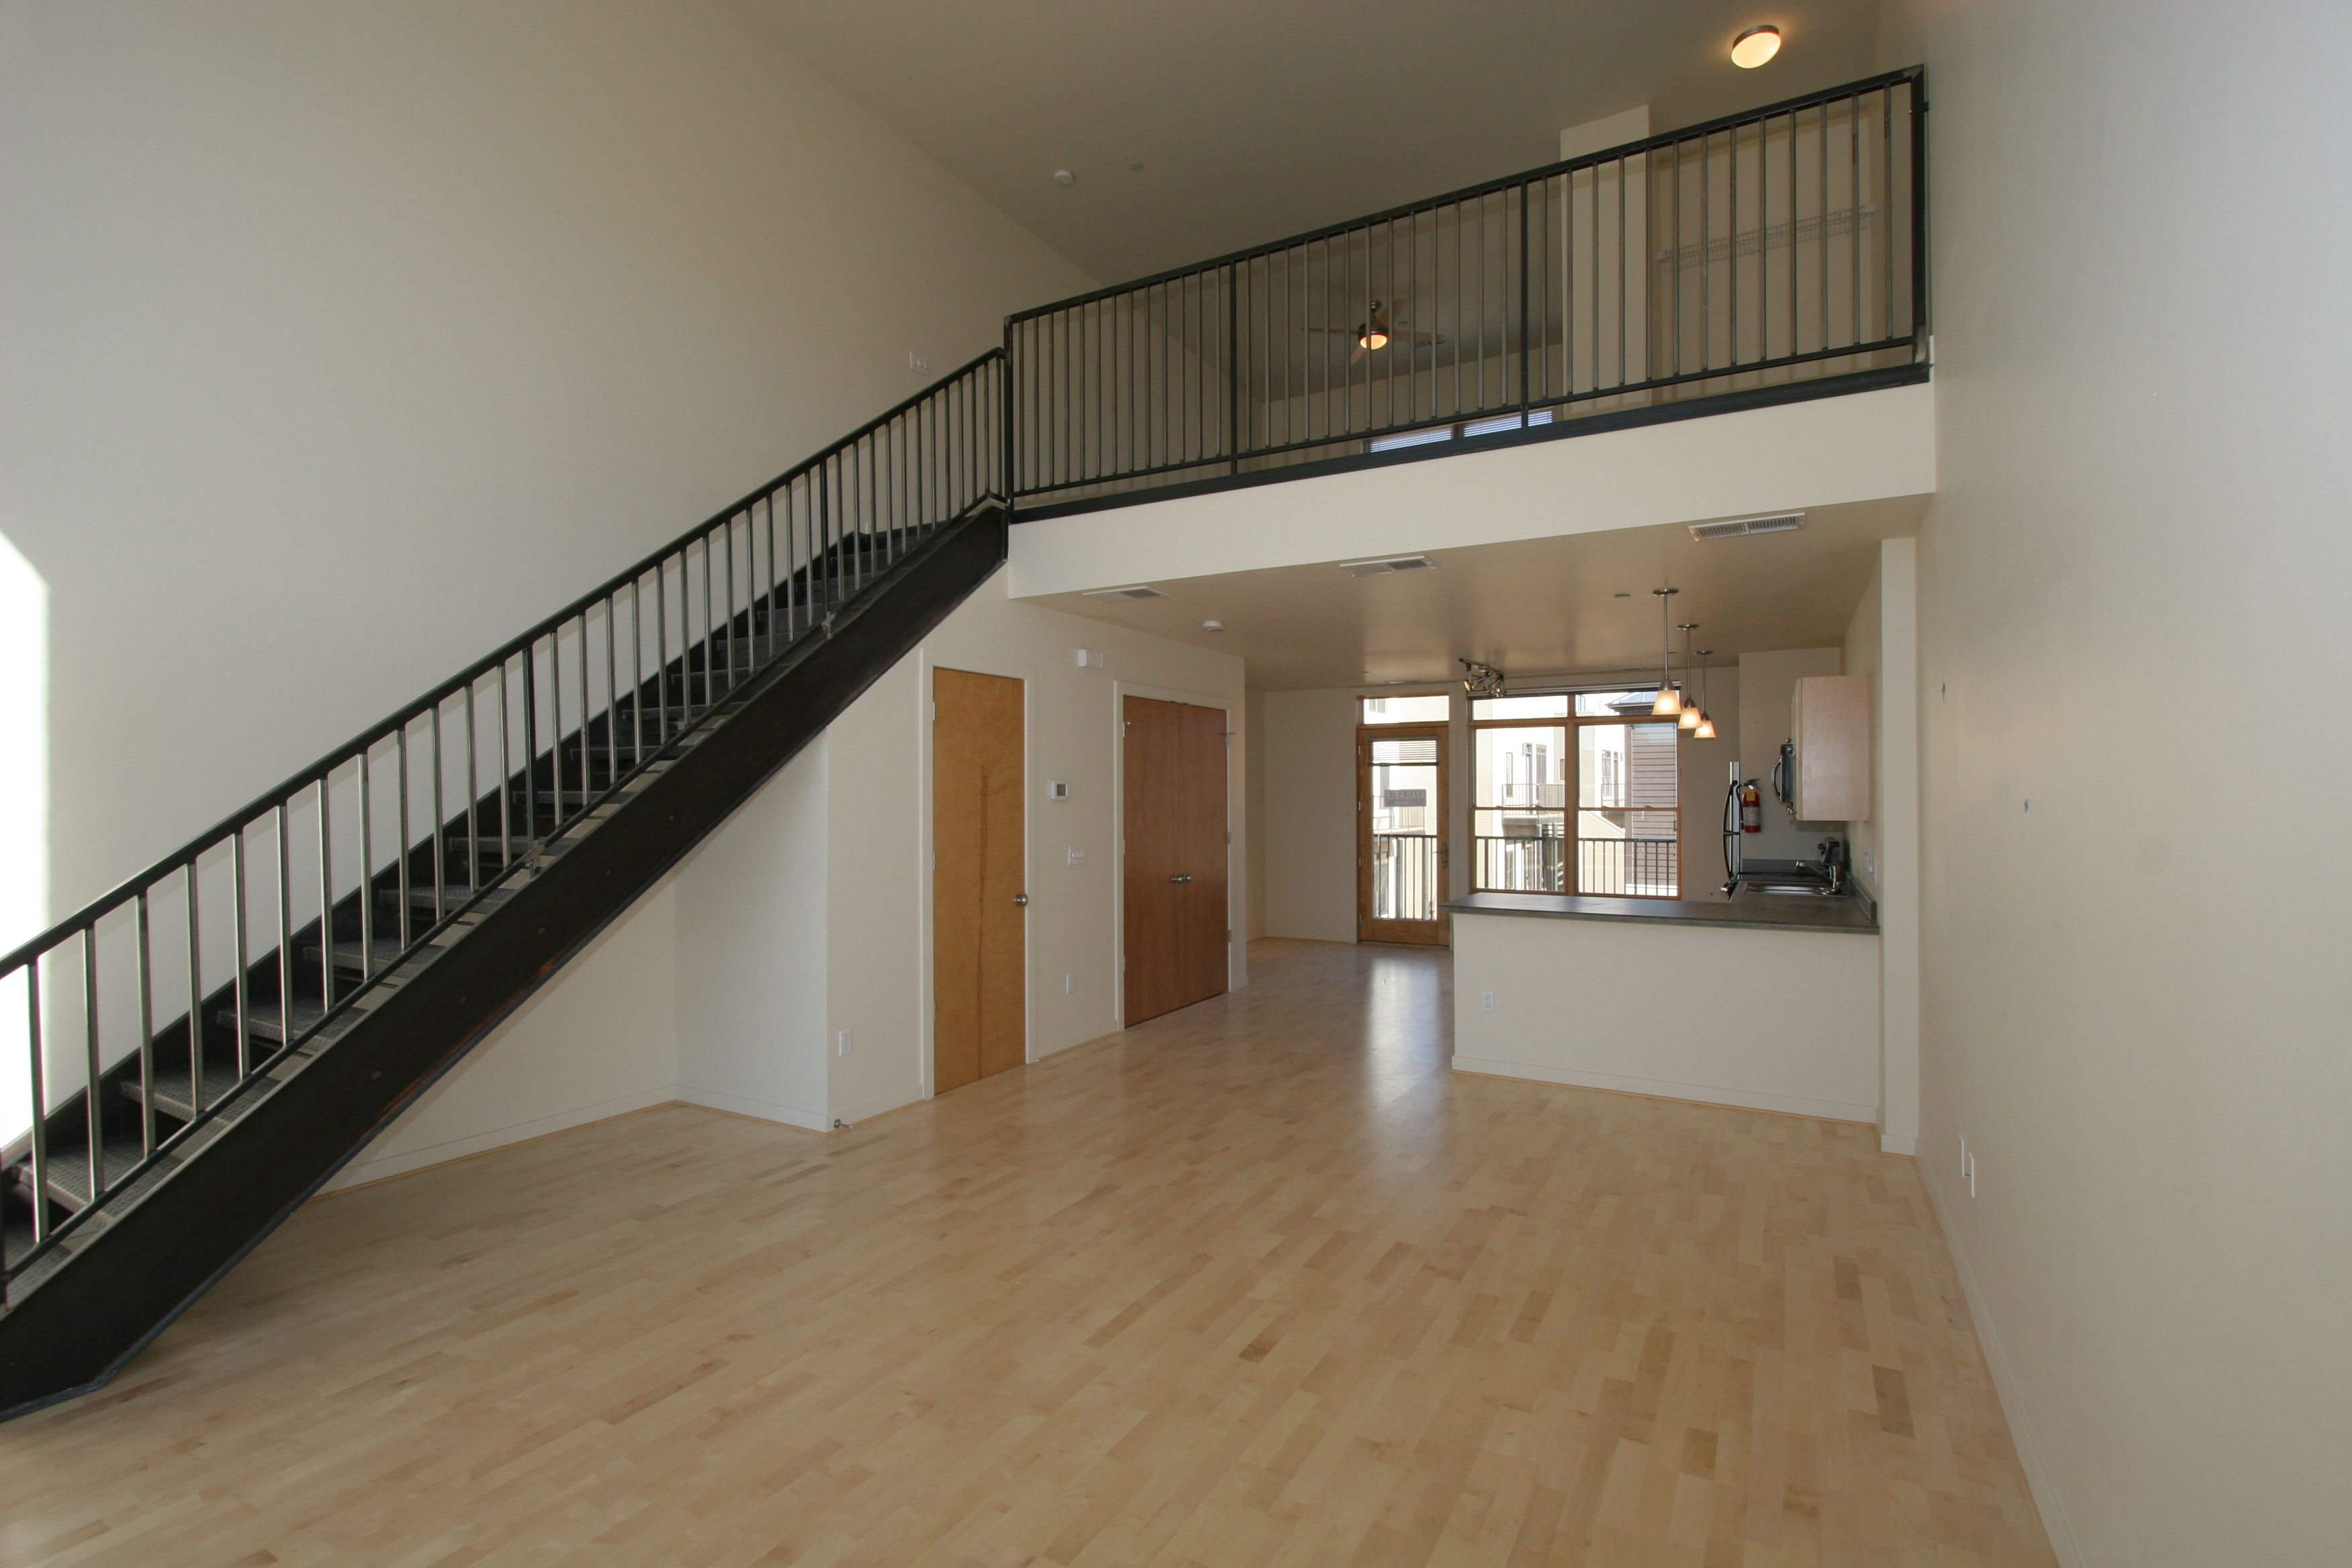 Google Image Result For Http Www Abqhigh Com Wp Content Uploads 2009 01 Img 6984 Jpg Garage Apartments House Design Interior Photo